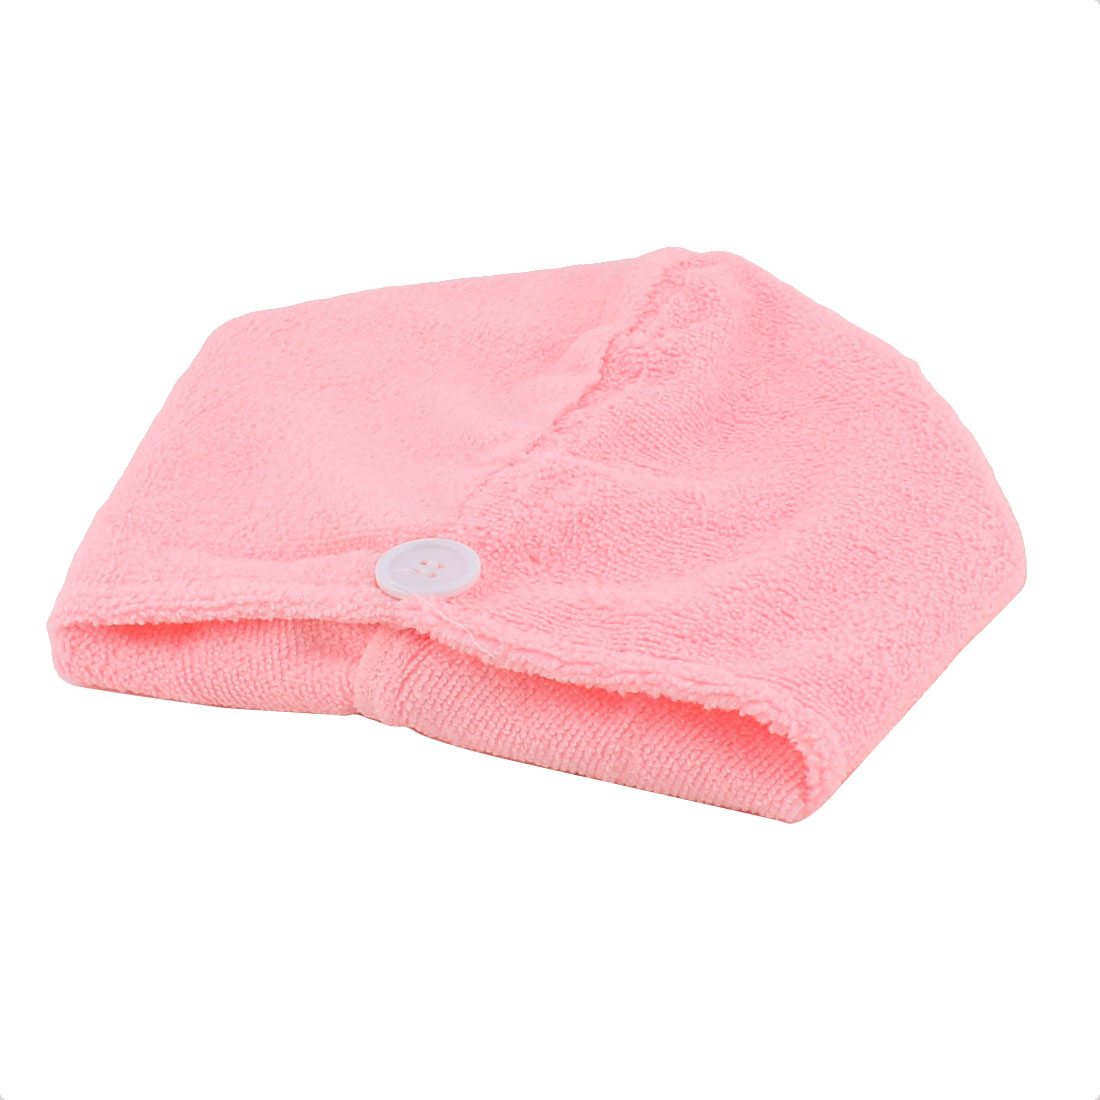 Lady Microfiber Triangle Shower Bathing Bath Hair Drying Dry Cap Hat Towel Pink